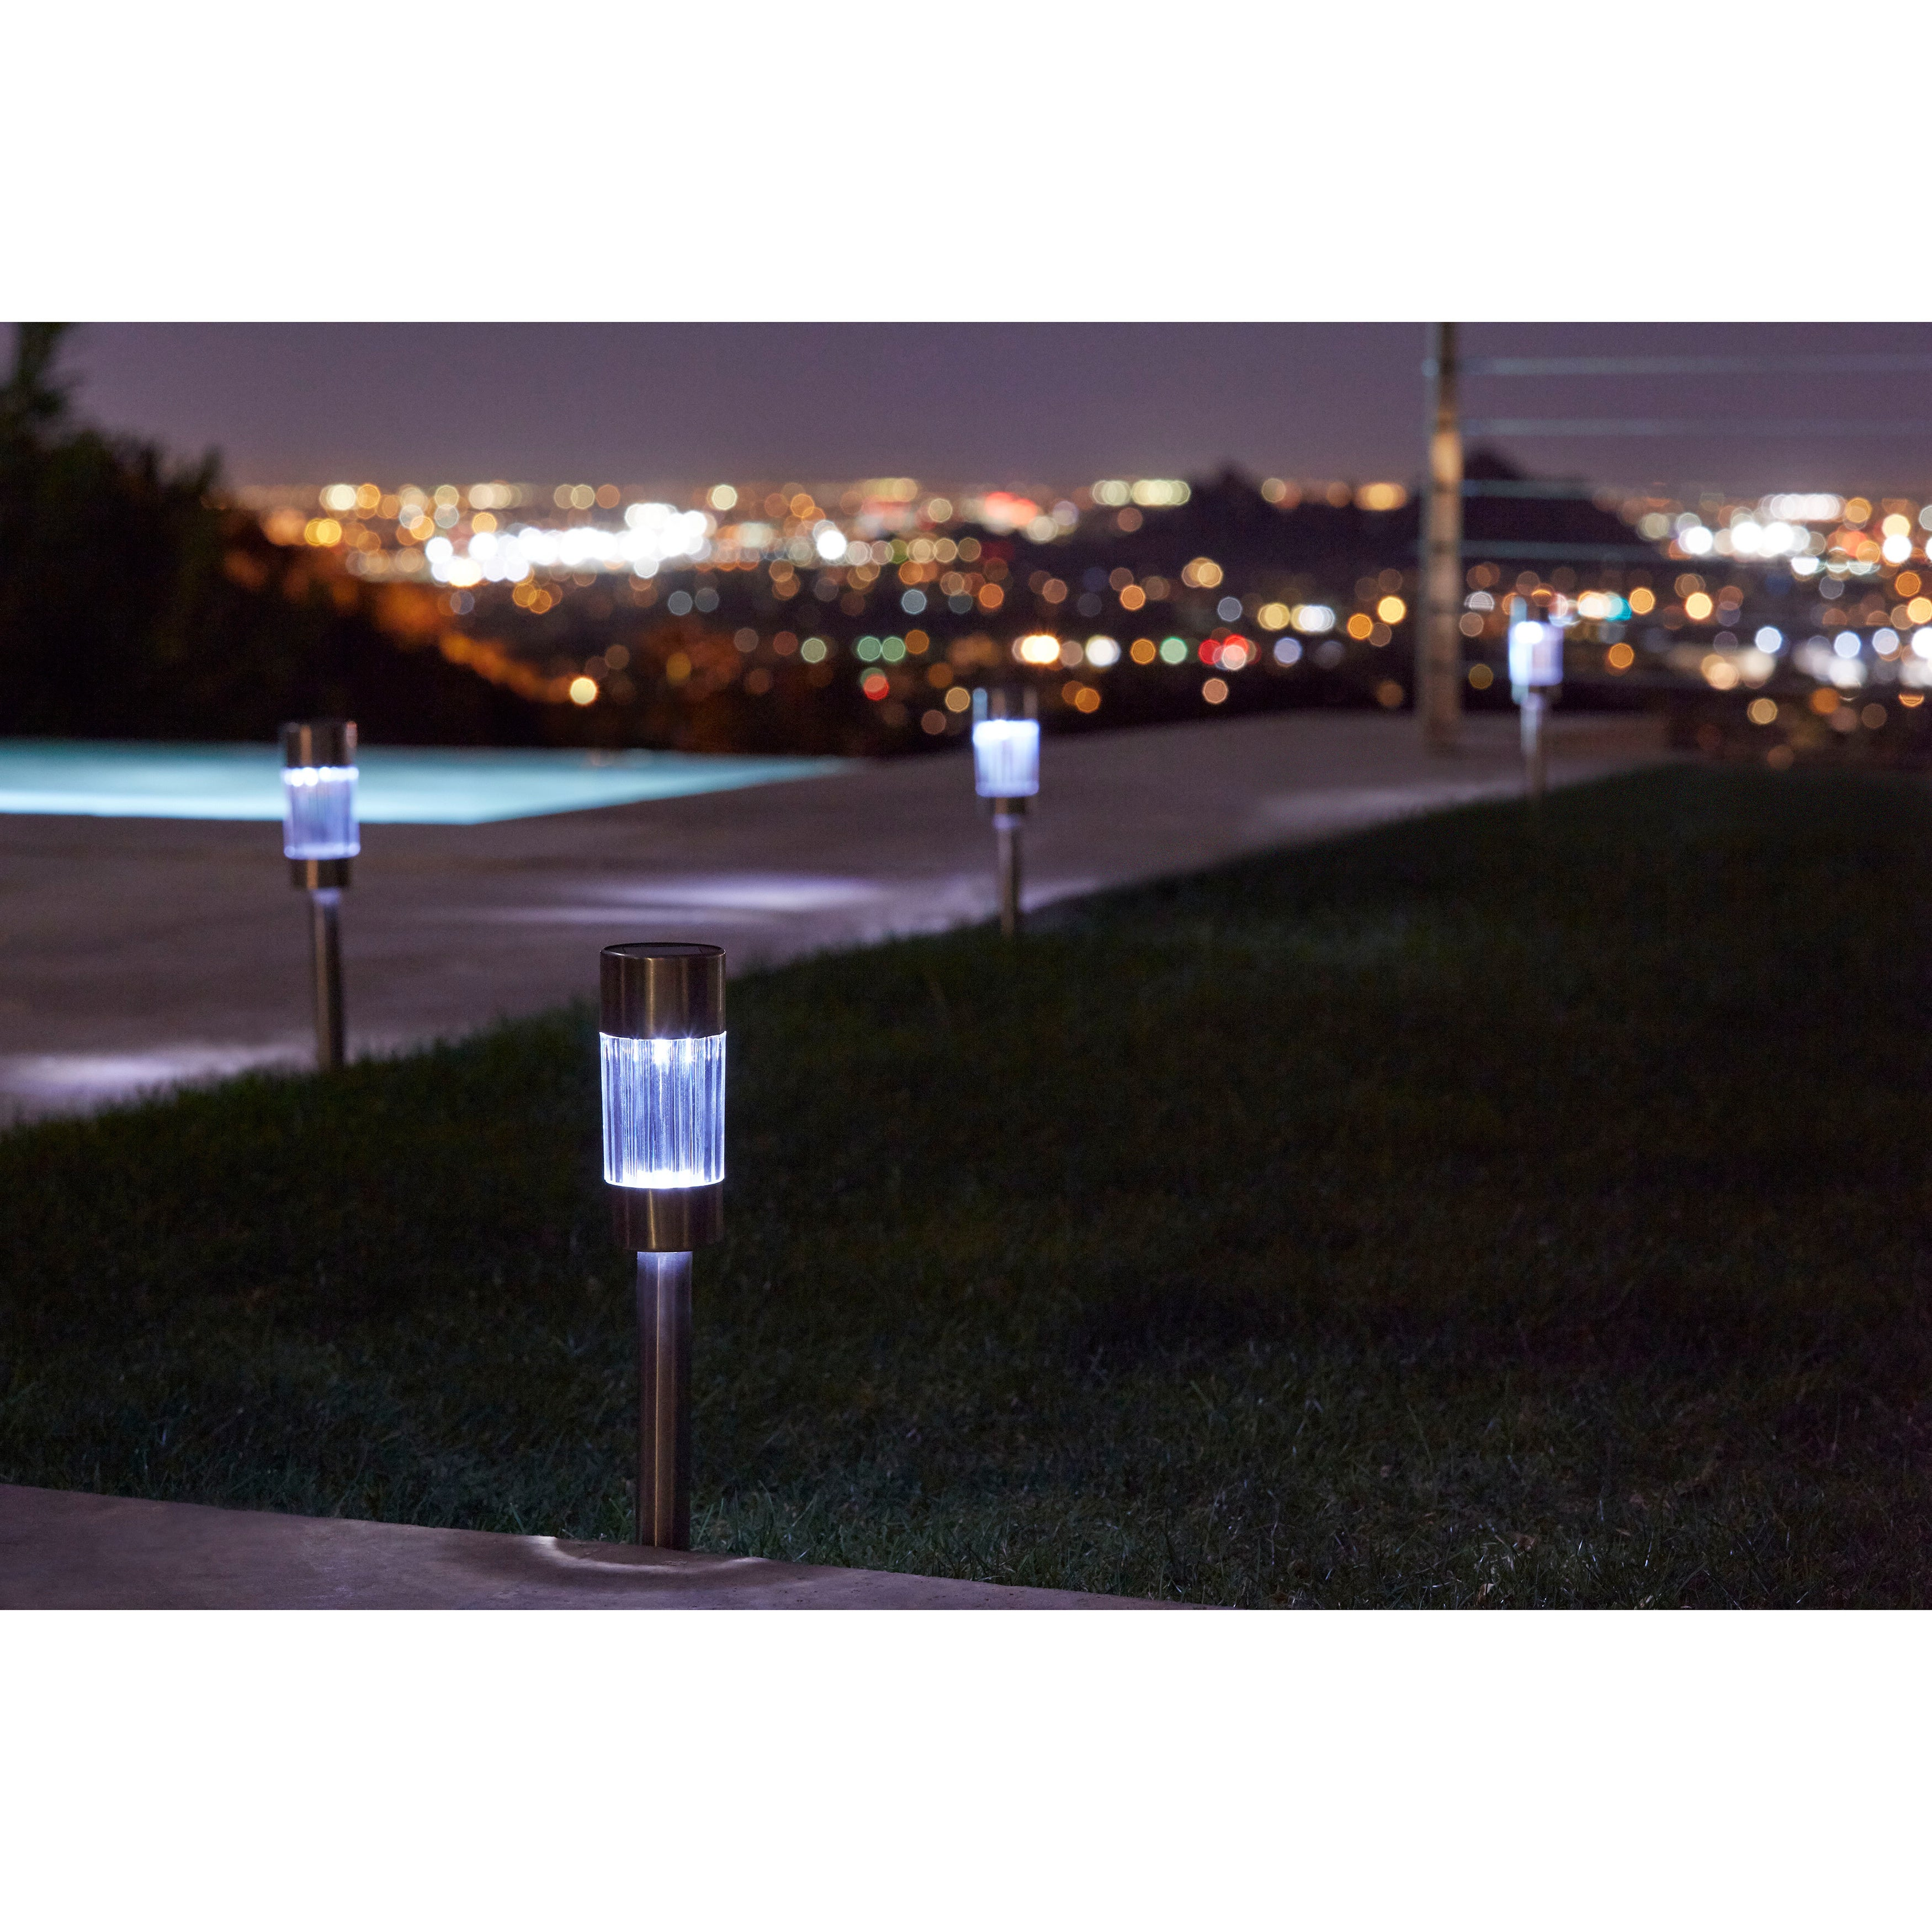 Trademark Pure Garden Outdoor Solar-powered LED Lights (S...